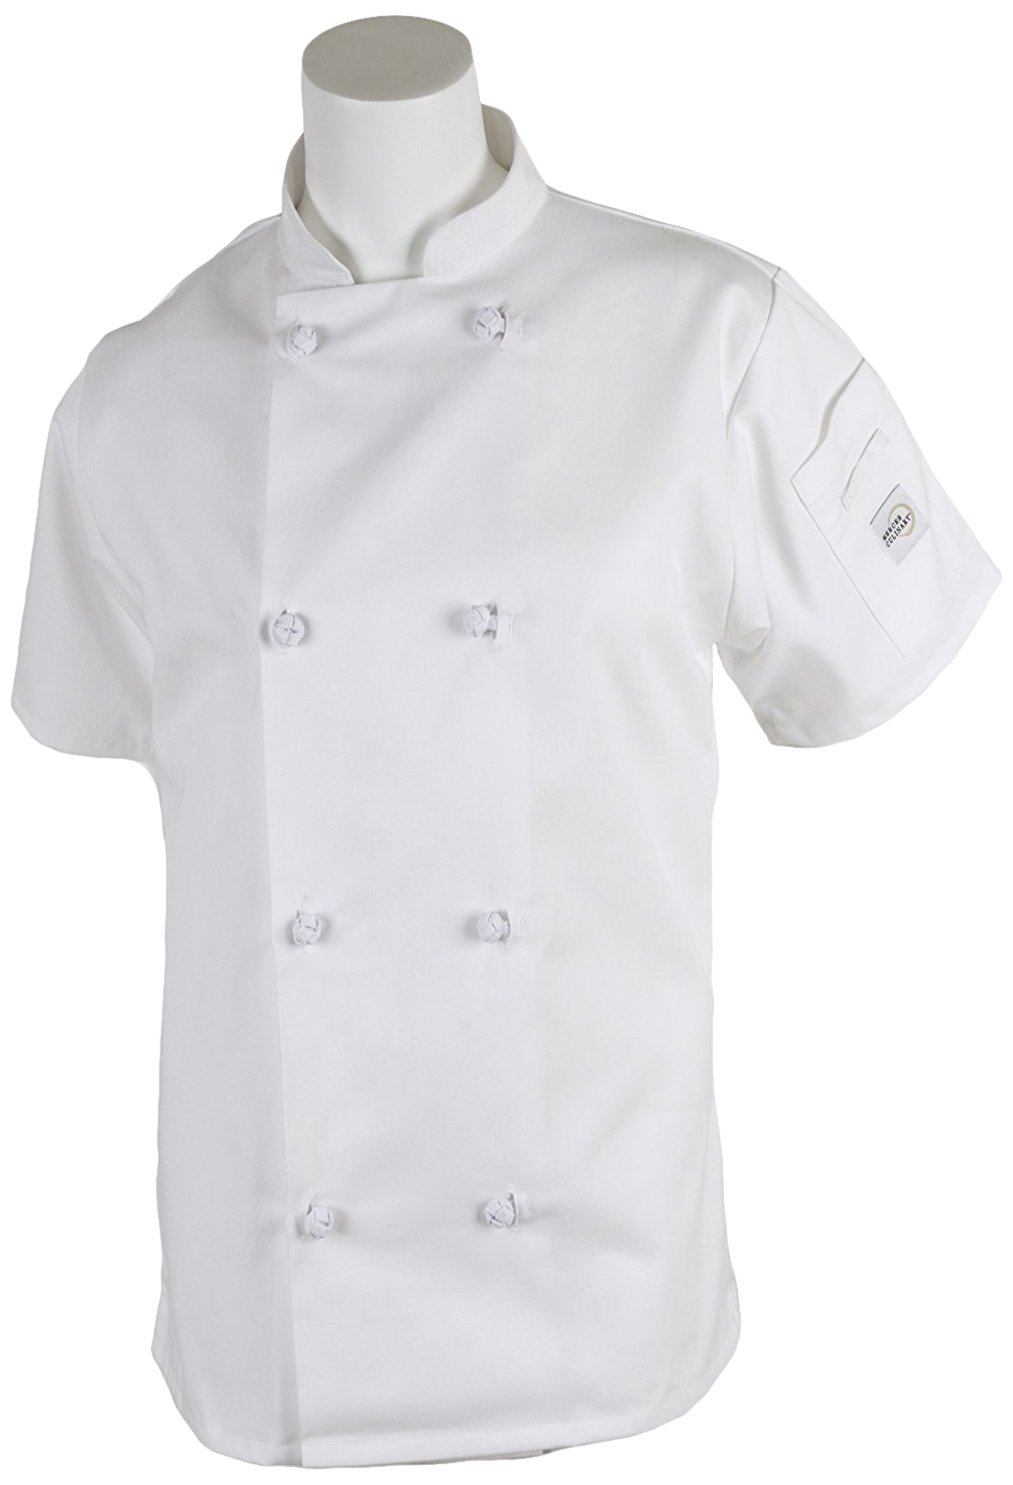 Mercer Culinary M60024WH2X Millennia Women's Short Sleeve Cook Jacket with Cloth Knot Buttons, XX-Large, White by Mercer Culinary